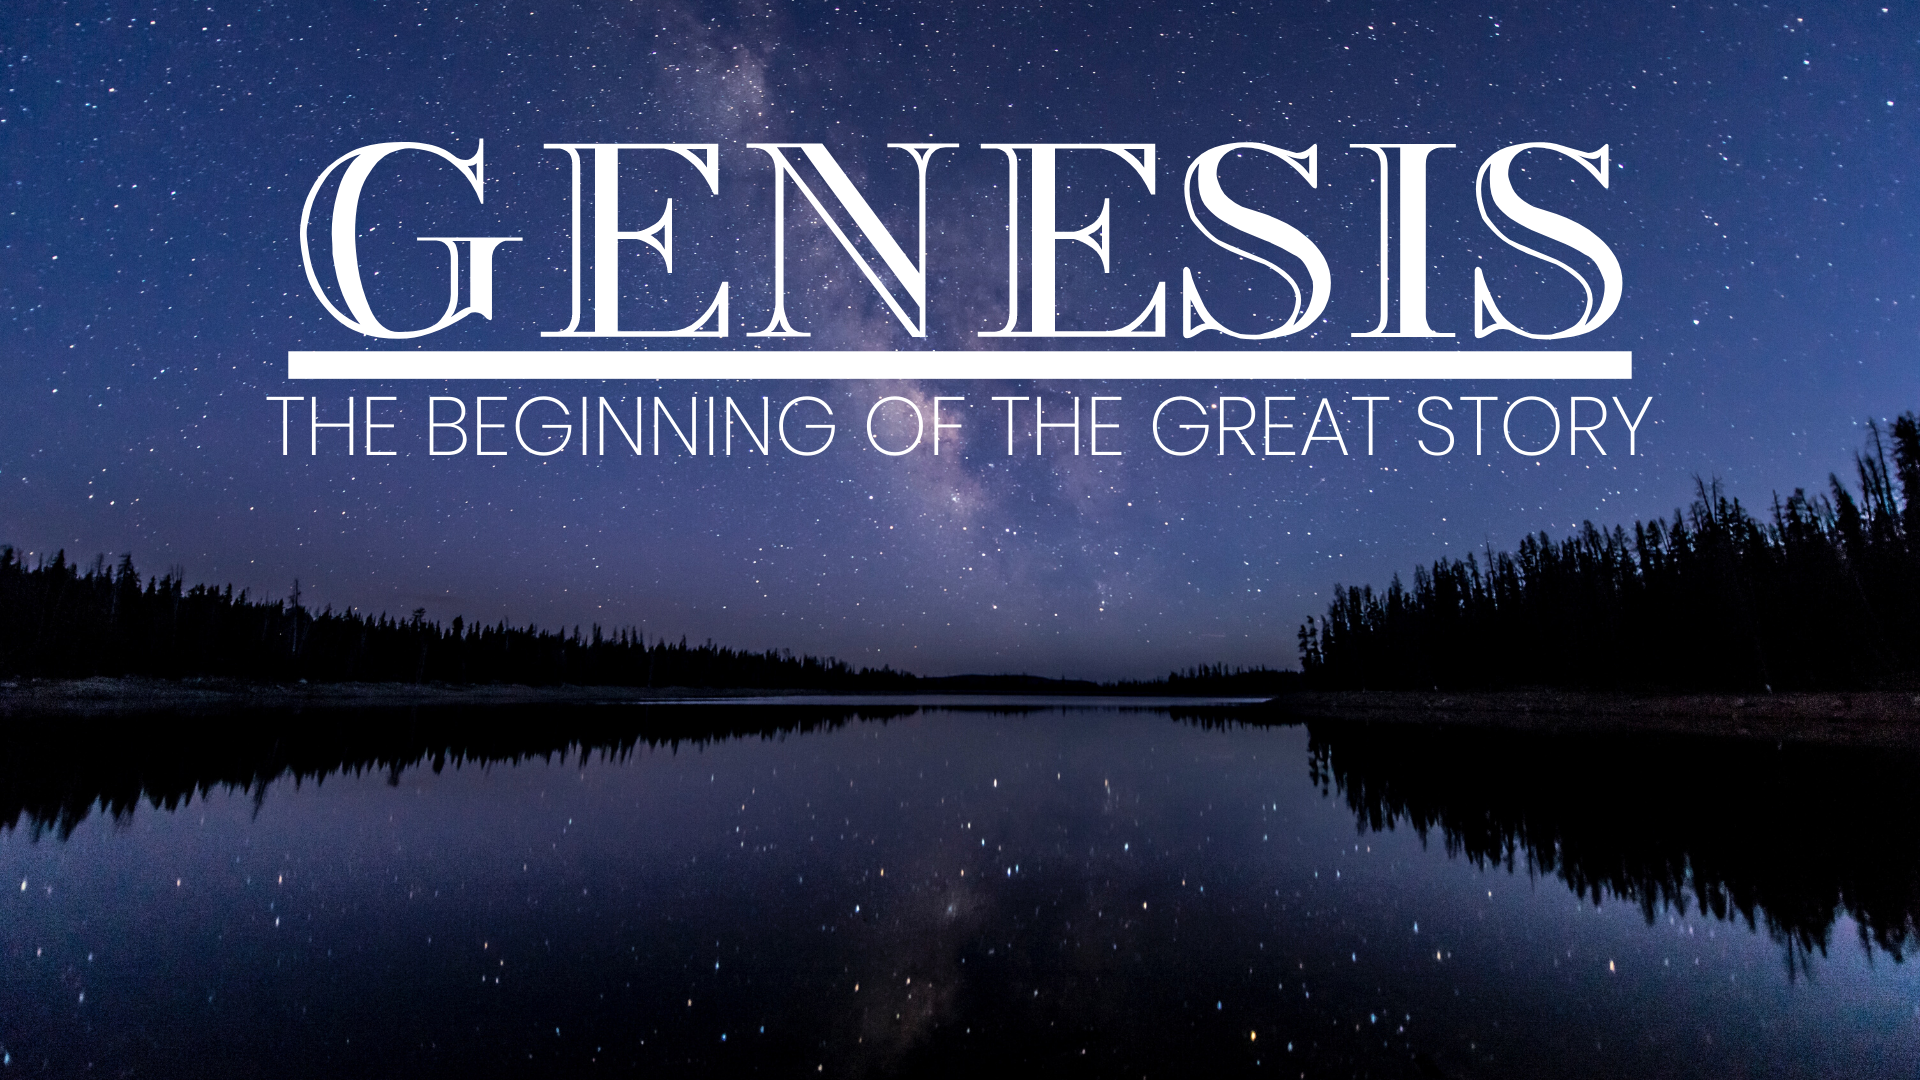 Genesis: The Beginning of the Great Story